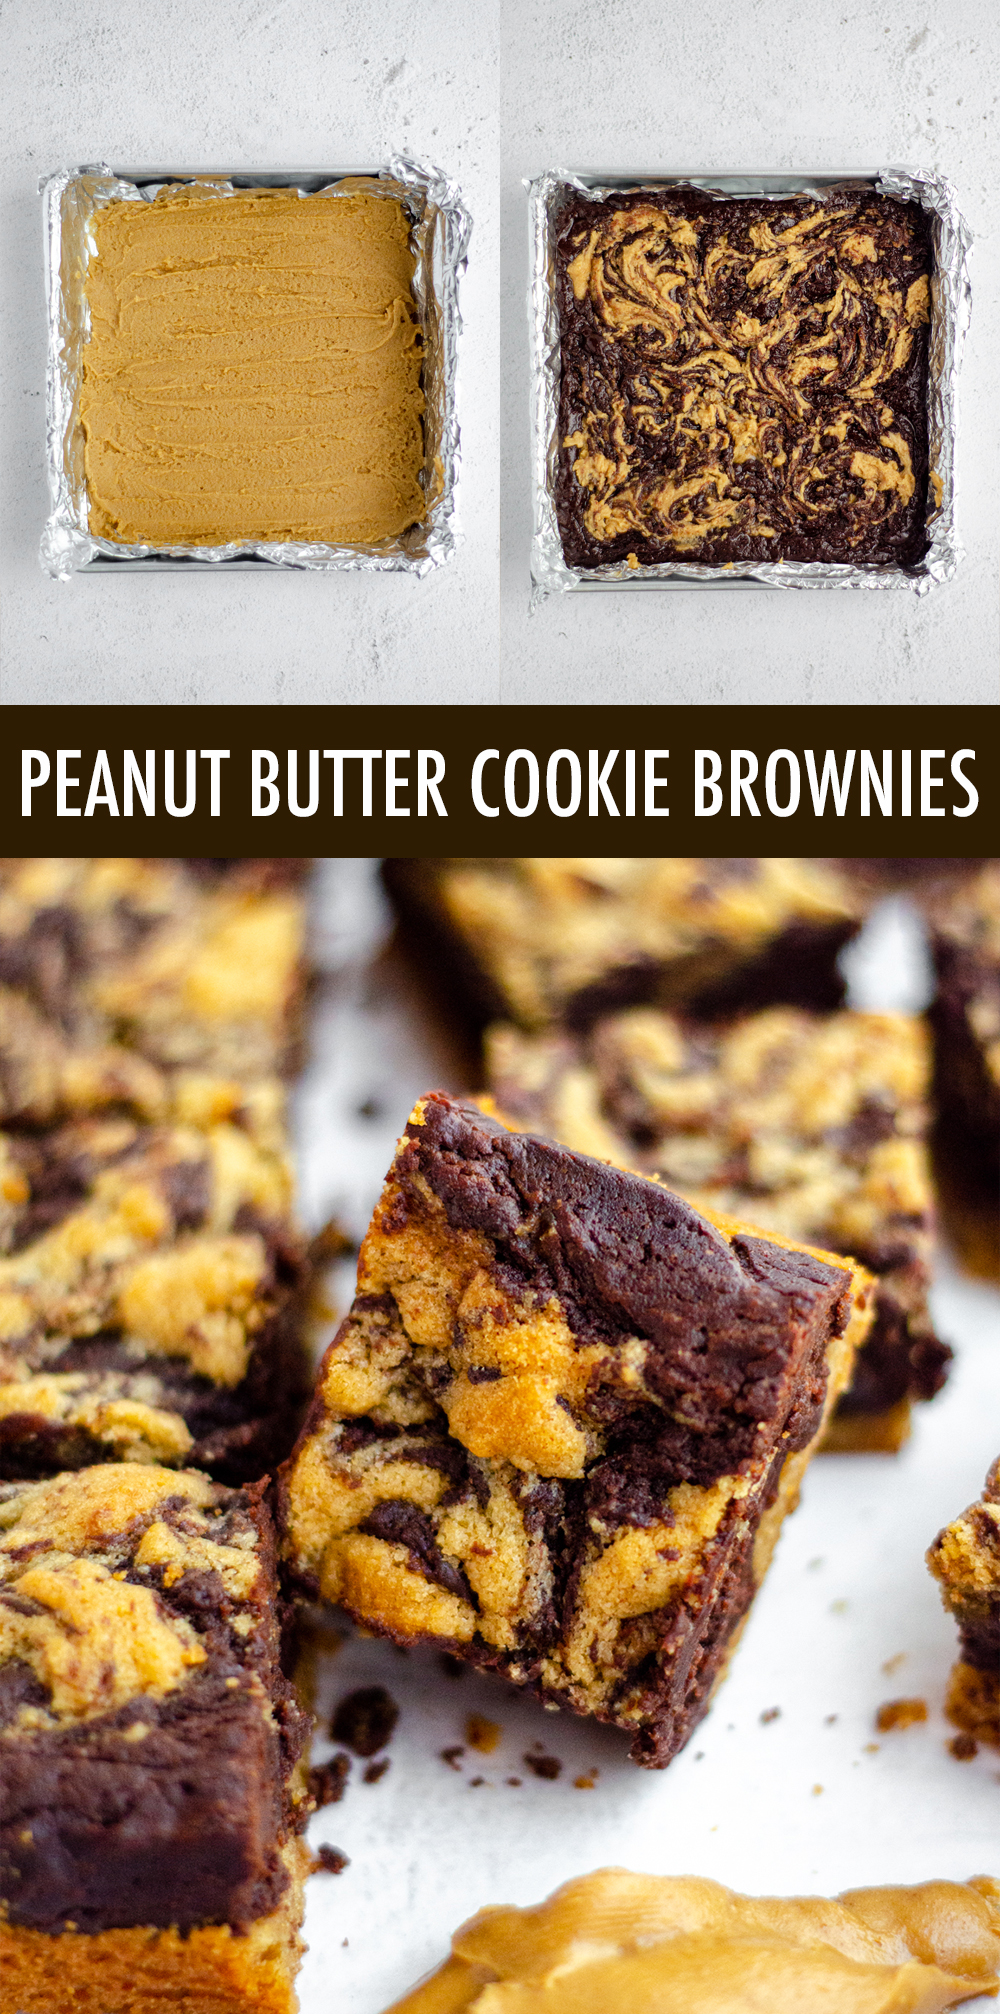 Soft and chewy brownies sit atop a peanut butter cookie crust and get swirled with peanut butter cookie batter to create peanut butter brownies unlike any other!